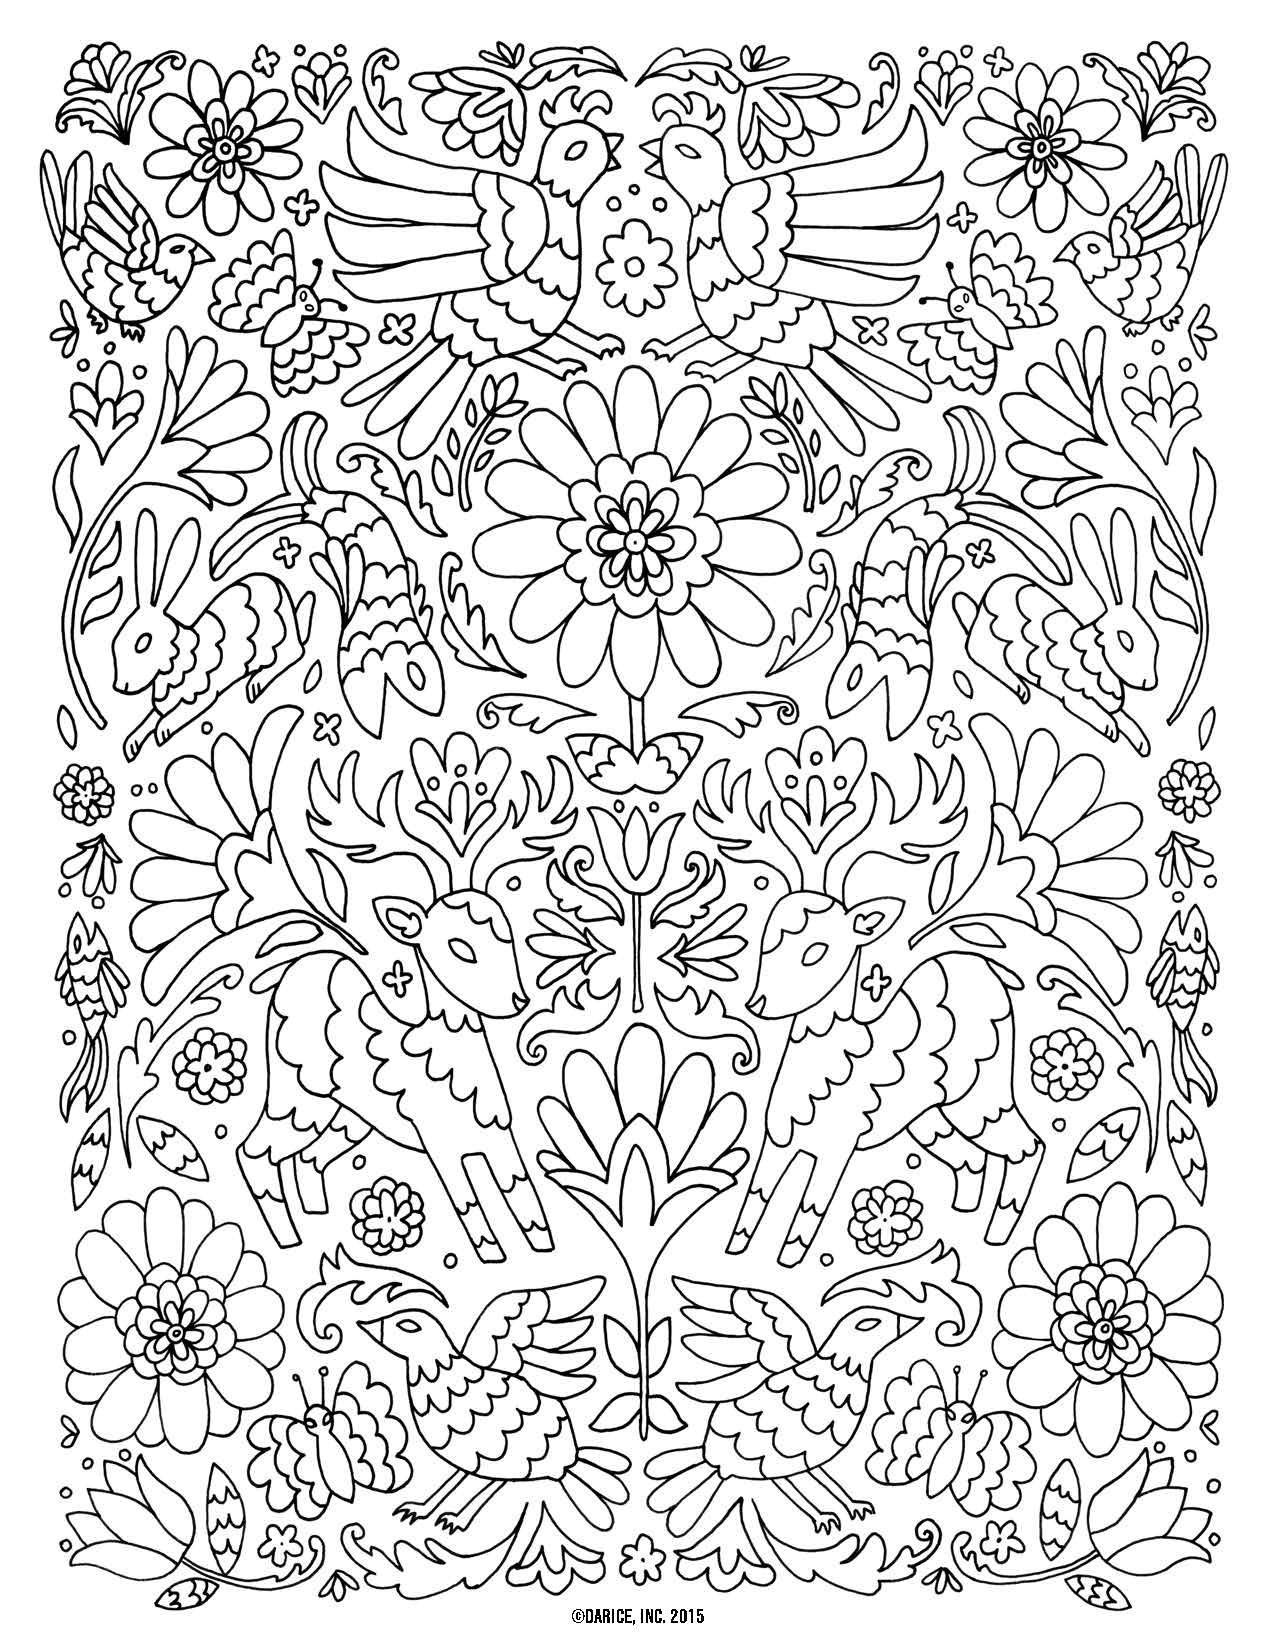 Printable coloring pages for adults flowers - Try Out The Adult Coloring Book Trend For Yourself With Our 9 Free Adult Coloring Pages